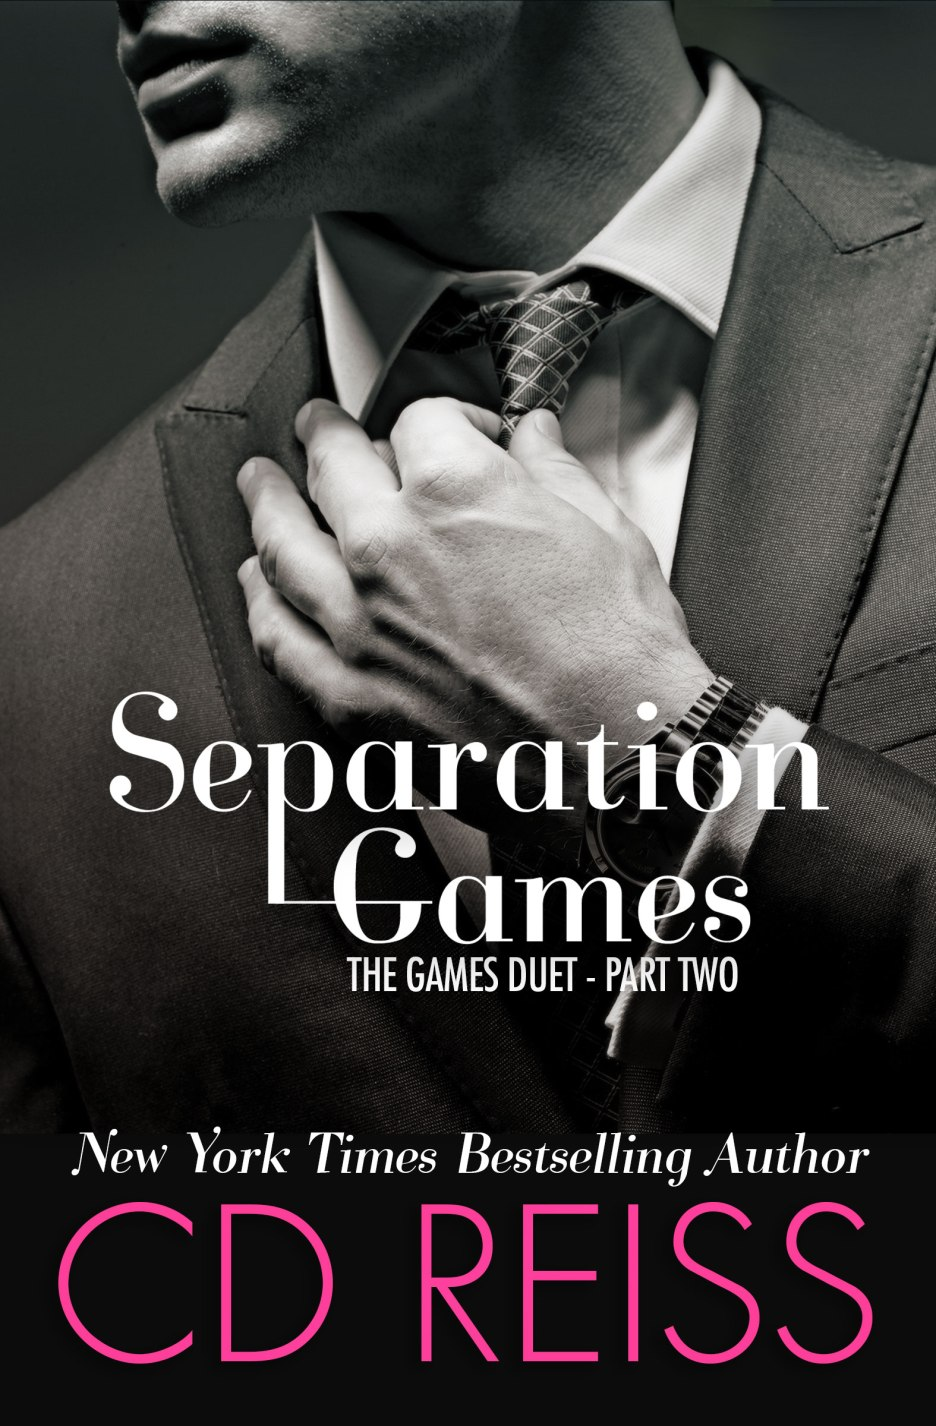 SEPARATION-GAMES-cover-FULL.jpg